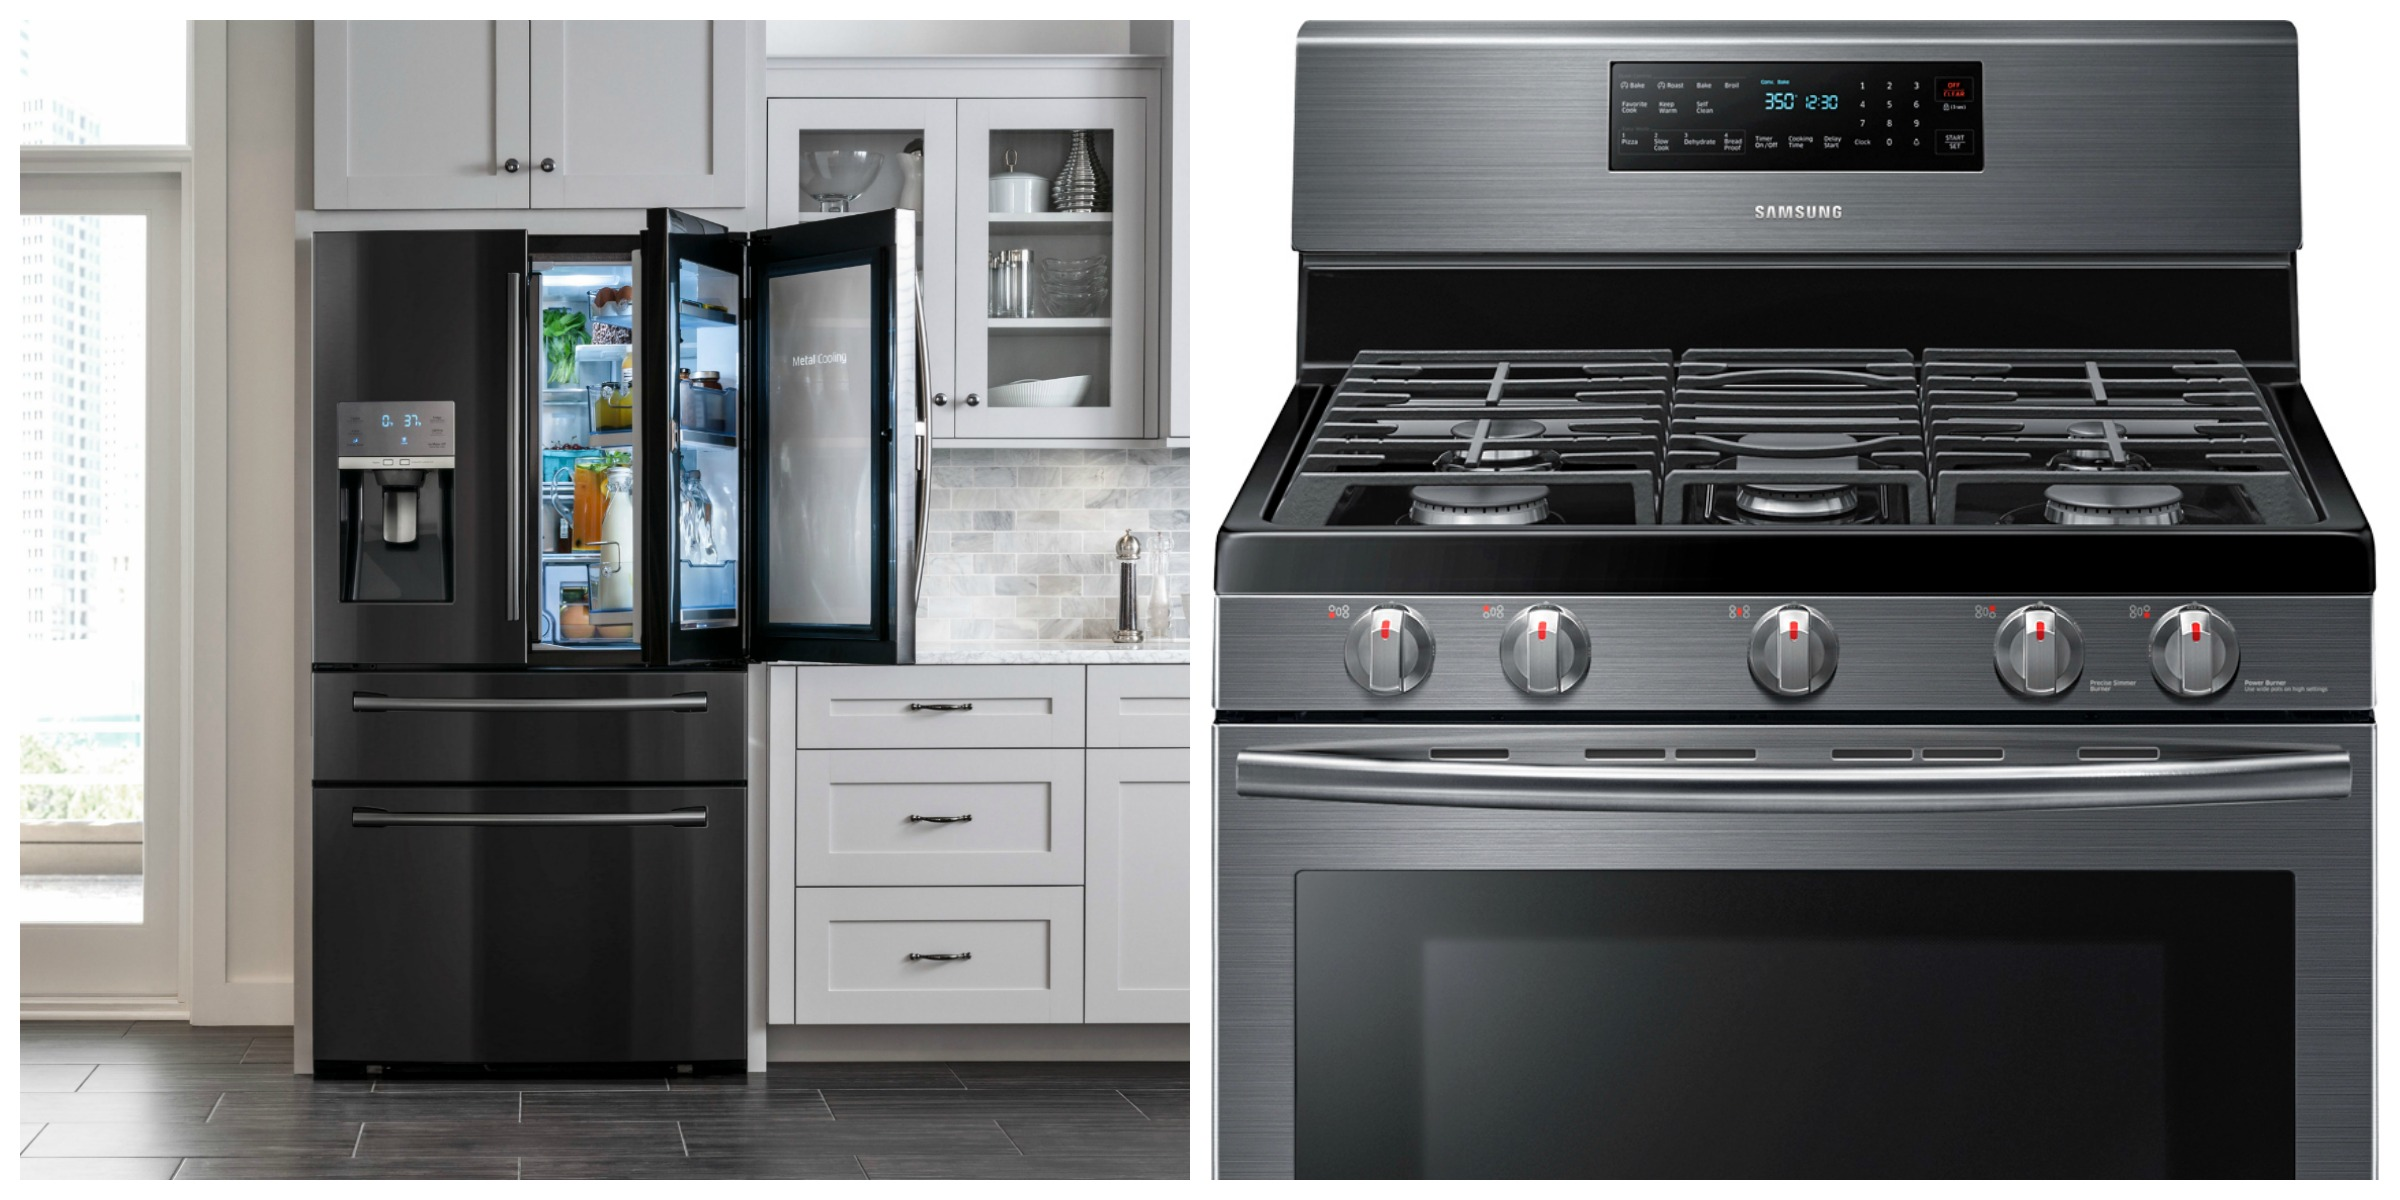 Used Kitchen Appliances Sale Head To Best Buy For Their Samsung Appliances Remodeling